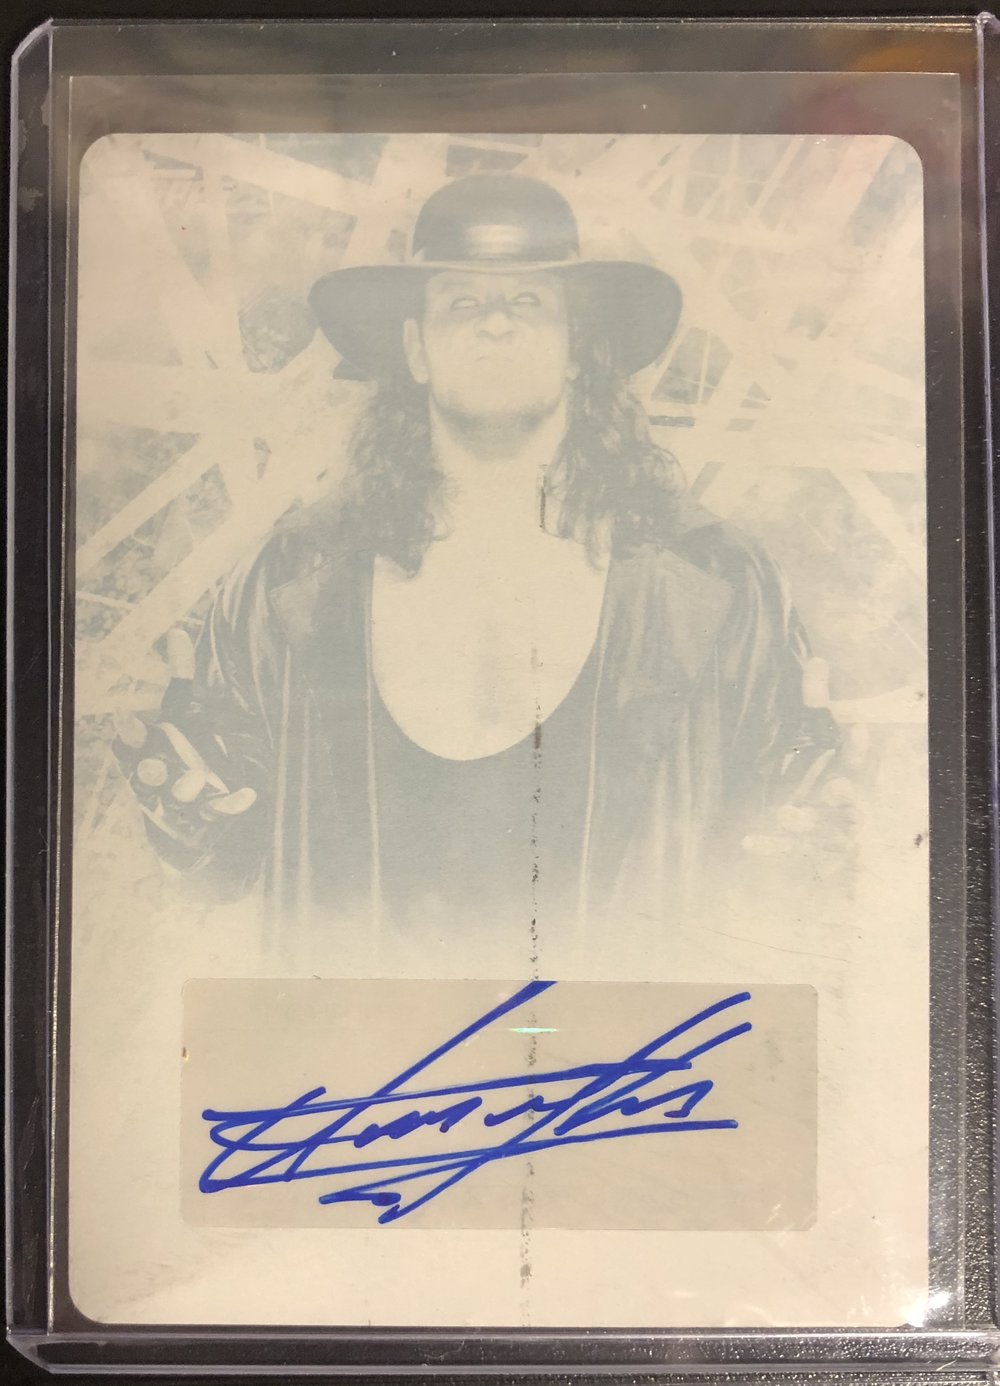 2018 Topps WWE Road to Wrestlemania The Undertaker 1/1 Printing Plate Auto